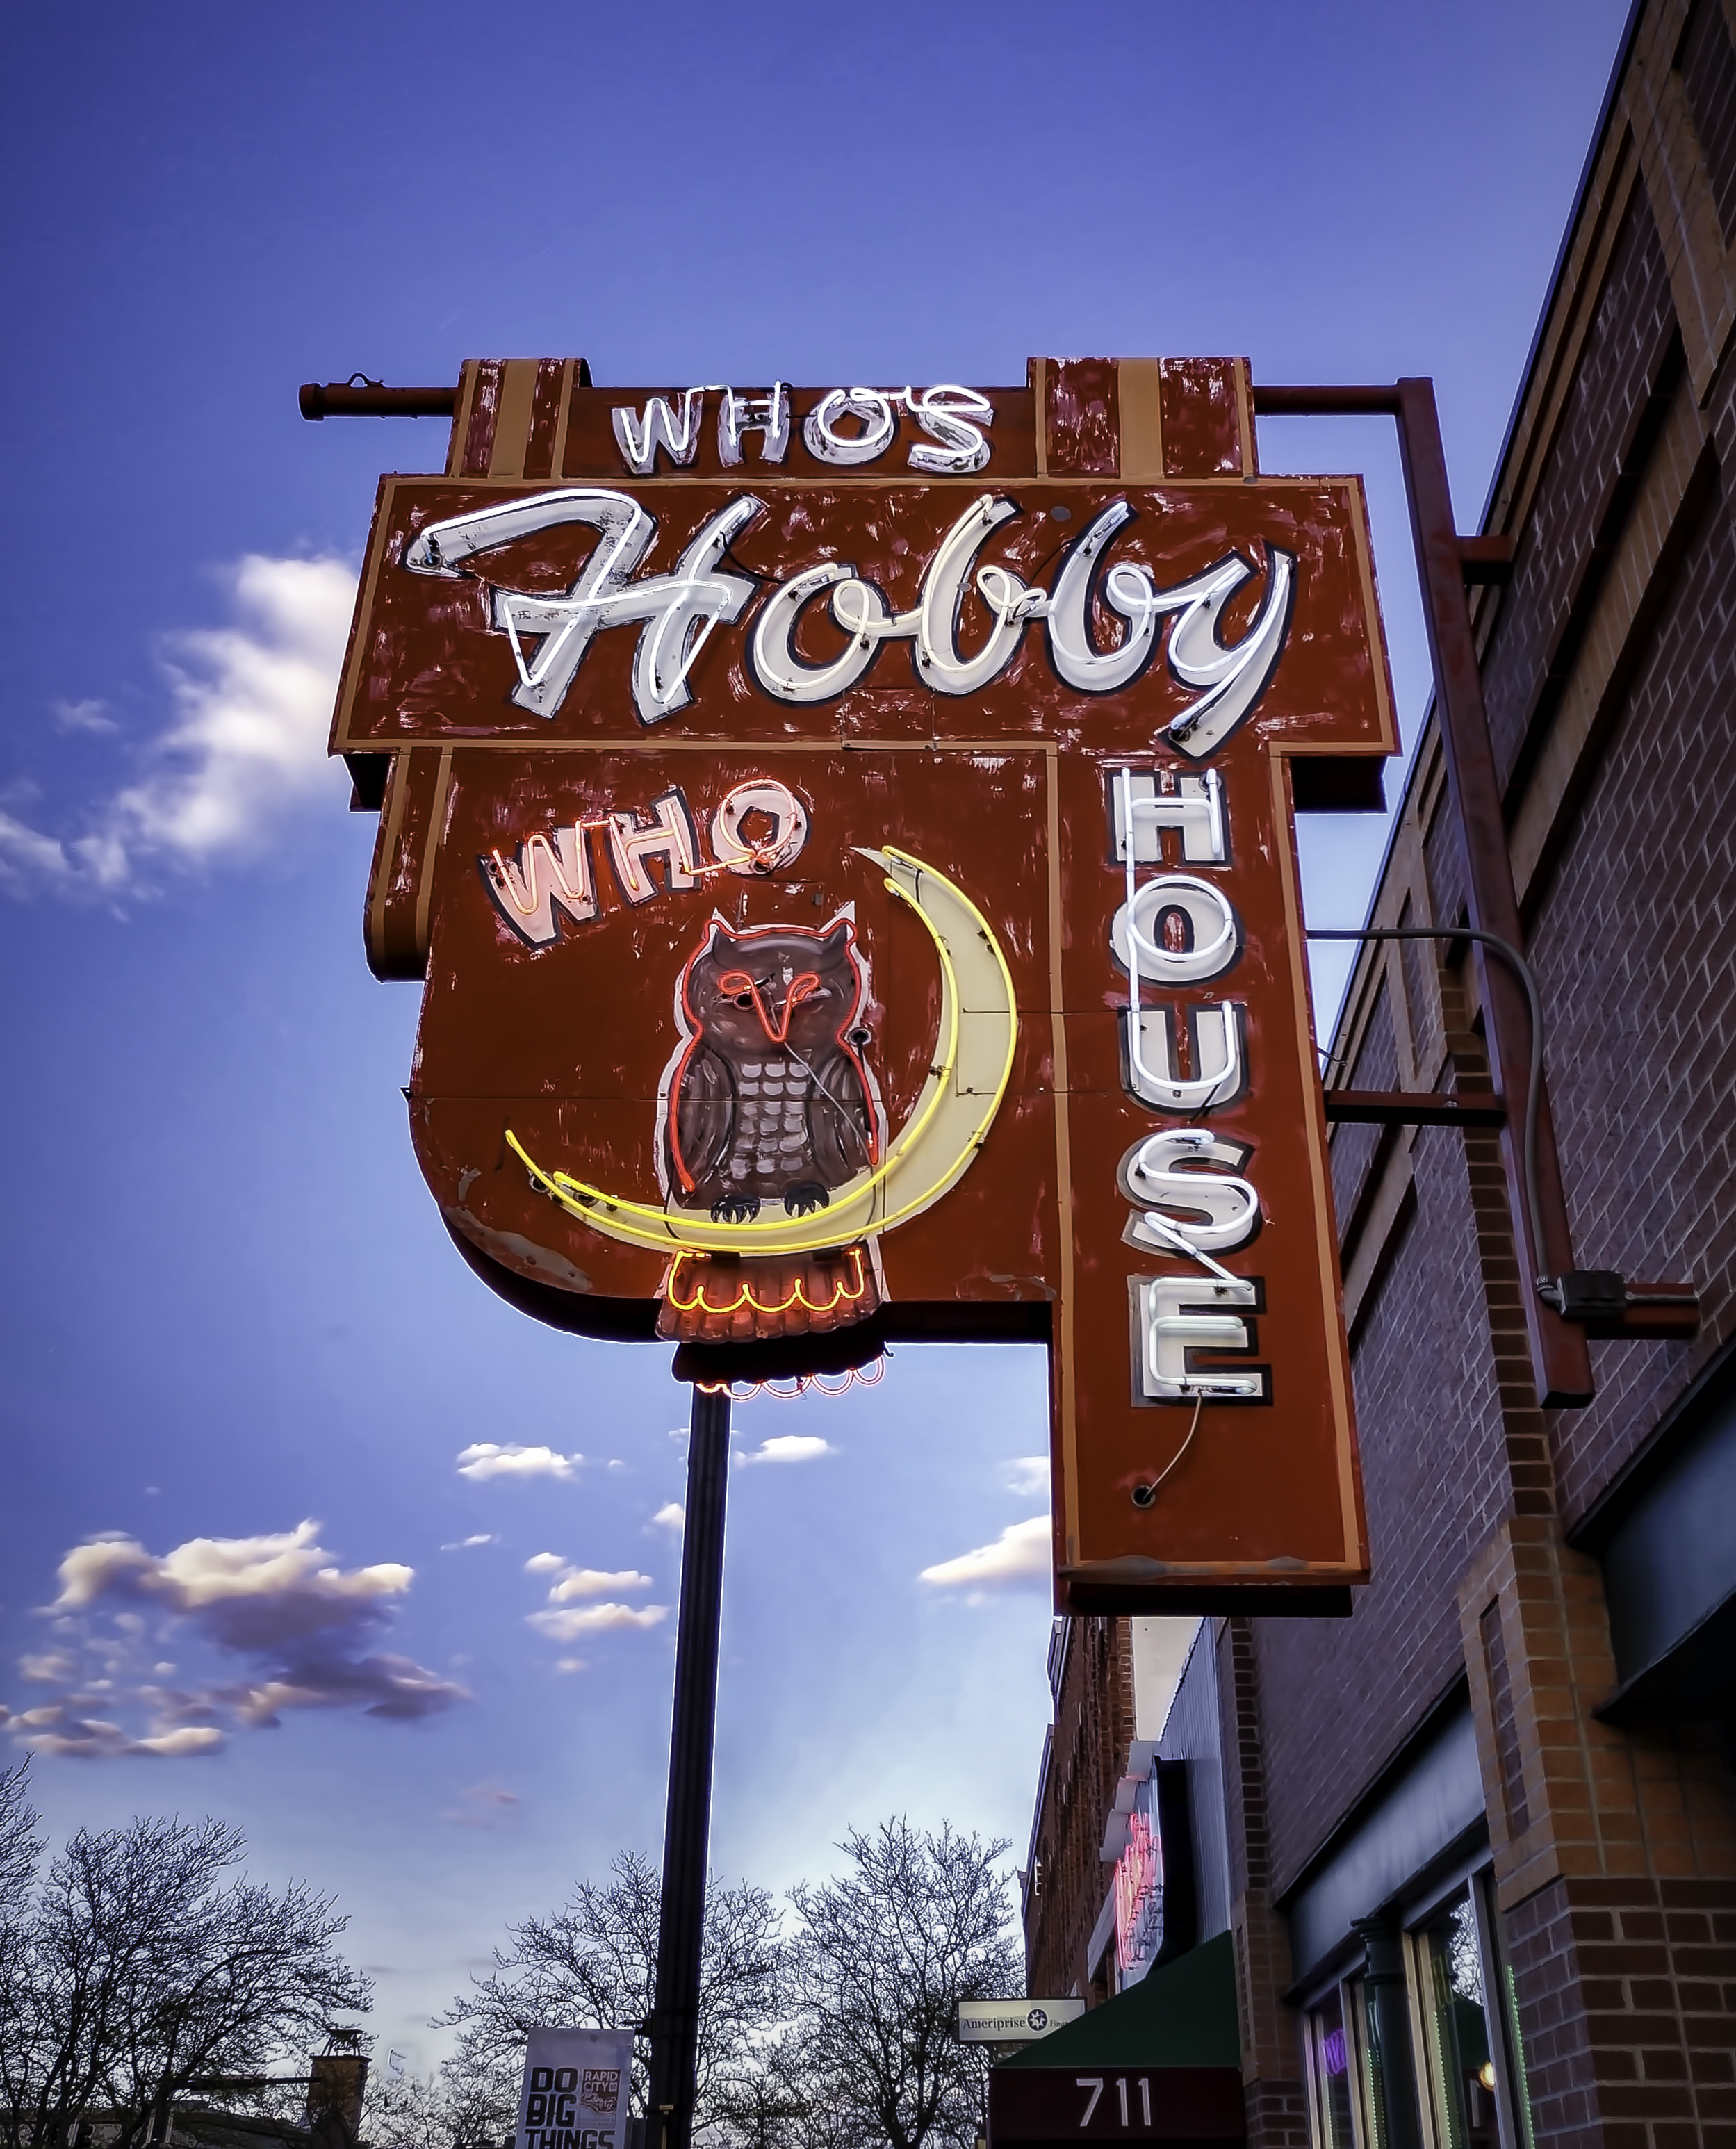 Who's Hobby House - 715 Main Street, Rapid City, South Dakota U.S.A. - May 15, 2018